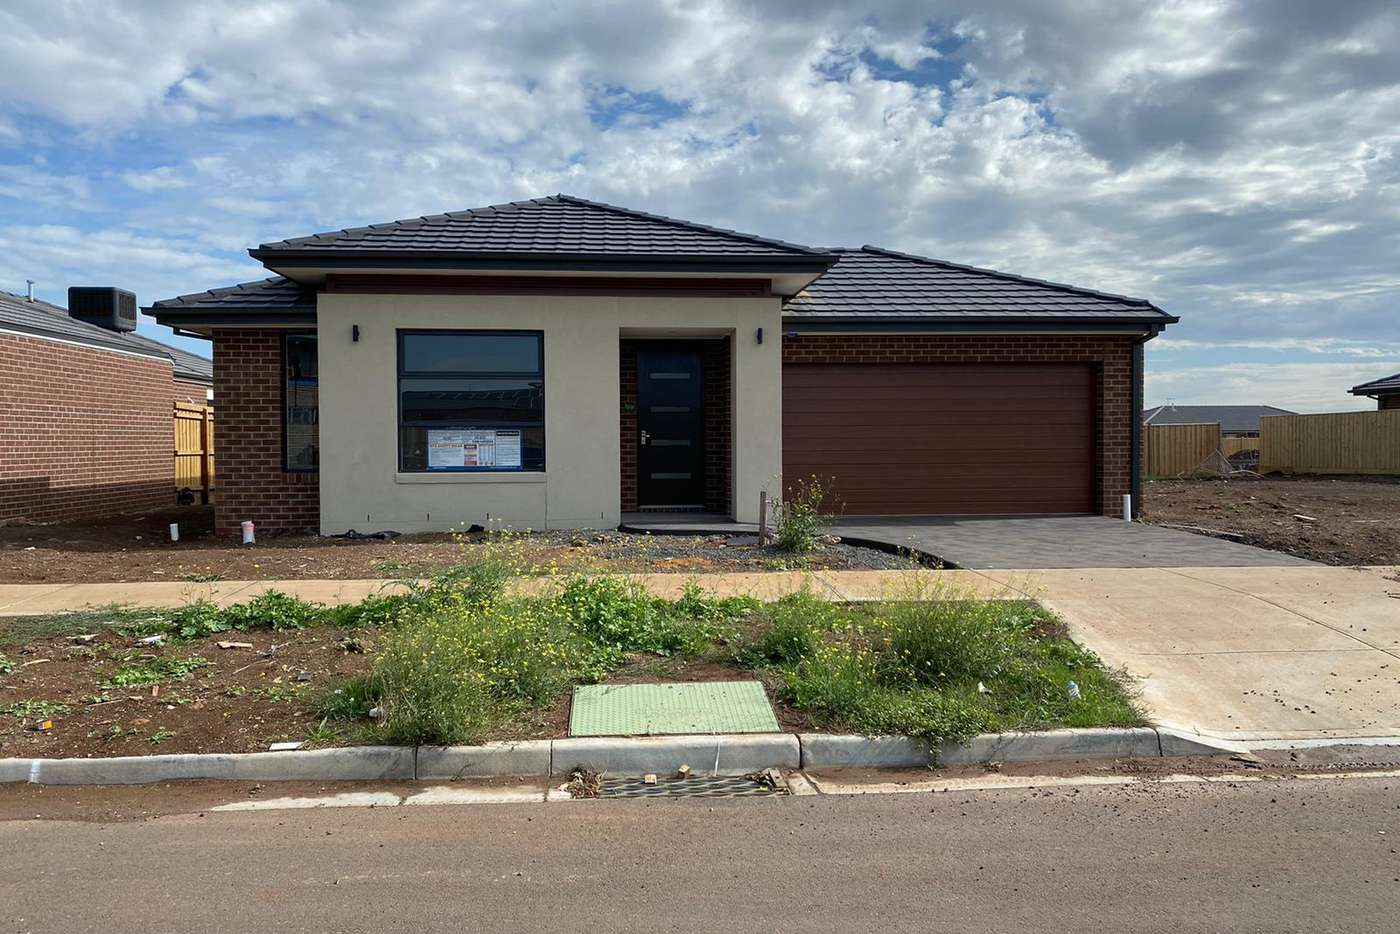 Main view of Homely house listing, 19 Chaparral Street, Wyndham Vale VIC 3024